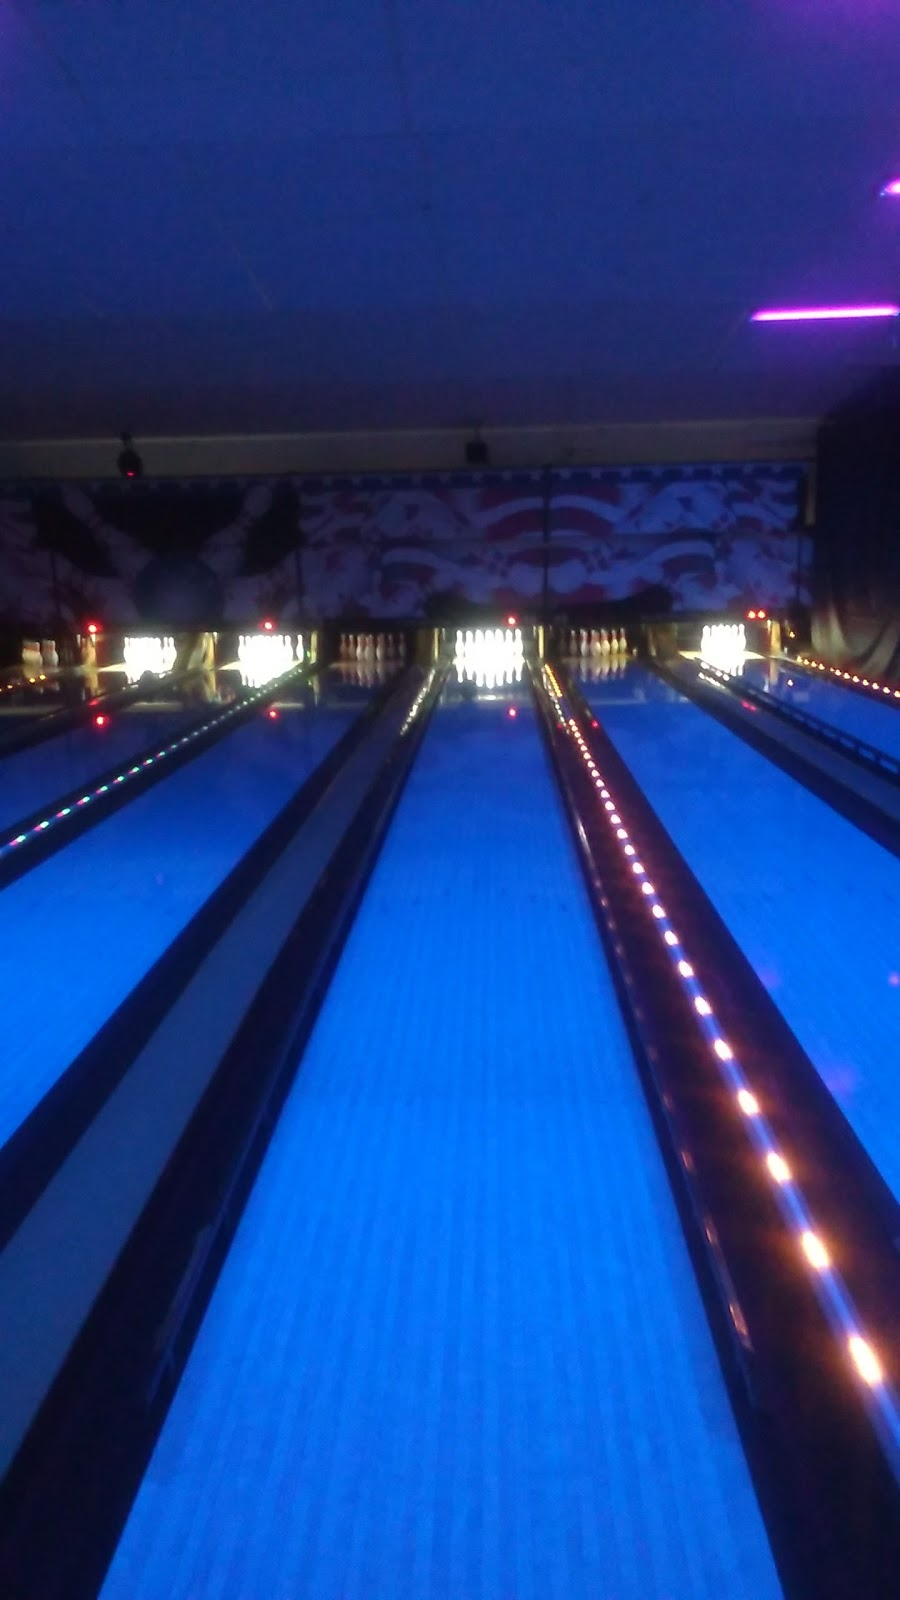 Plum Hollow Family Center - bowling alley  | Photo 10 of 10 | Address: 1933 IL-26, Dixon, IL 61021, USA | Phone: (815) 271-4101